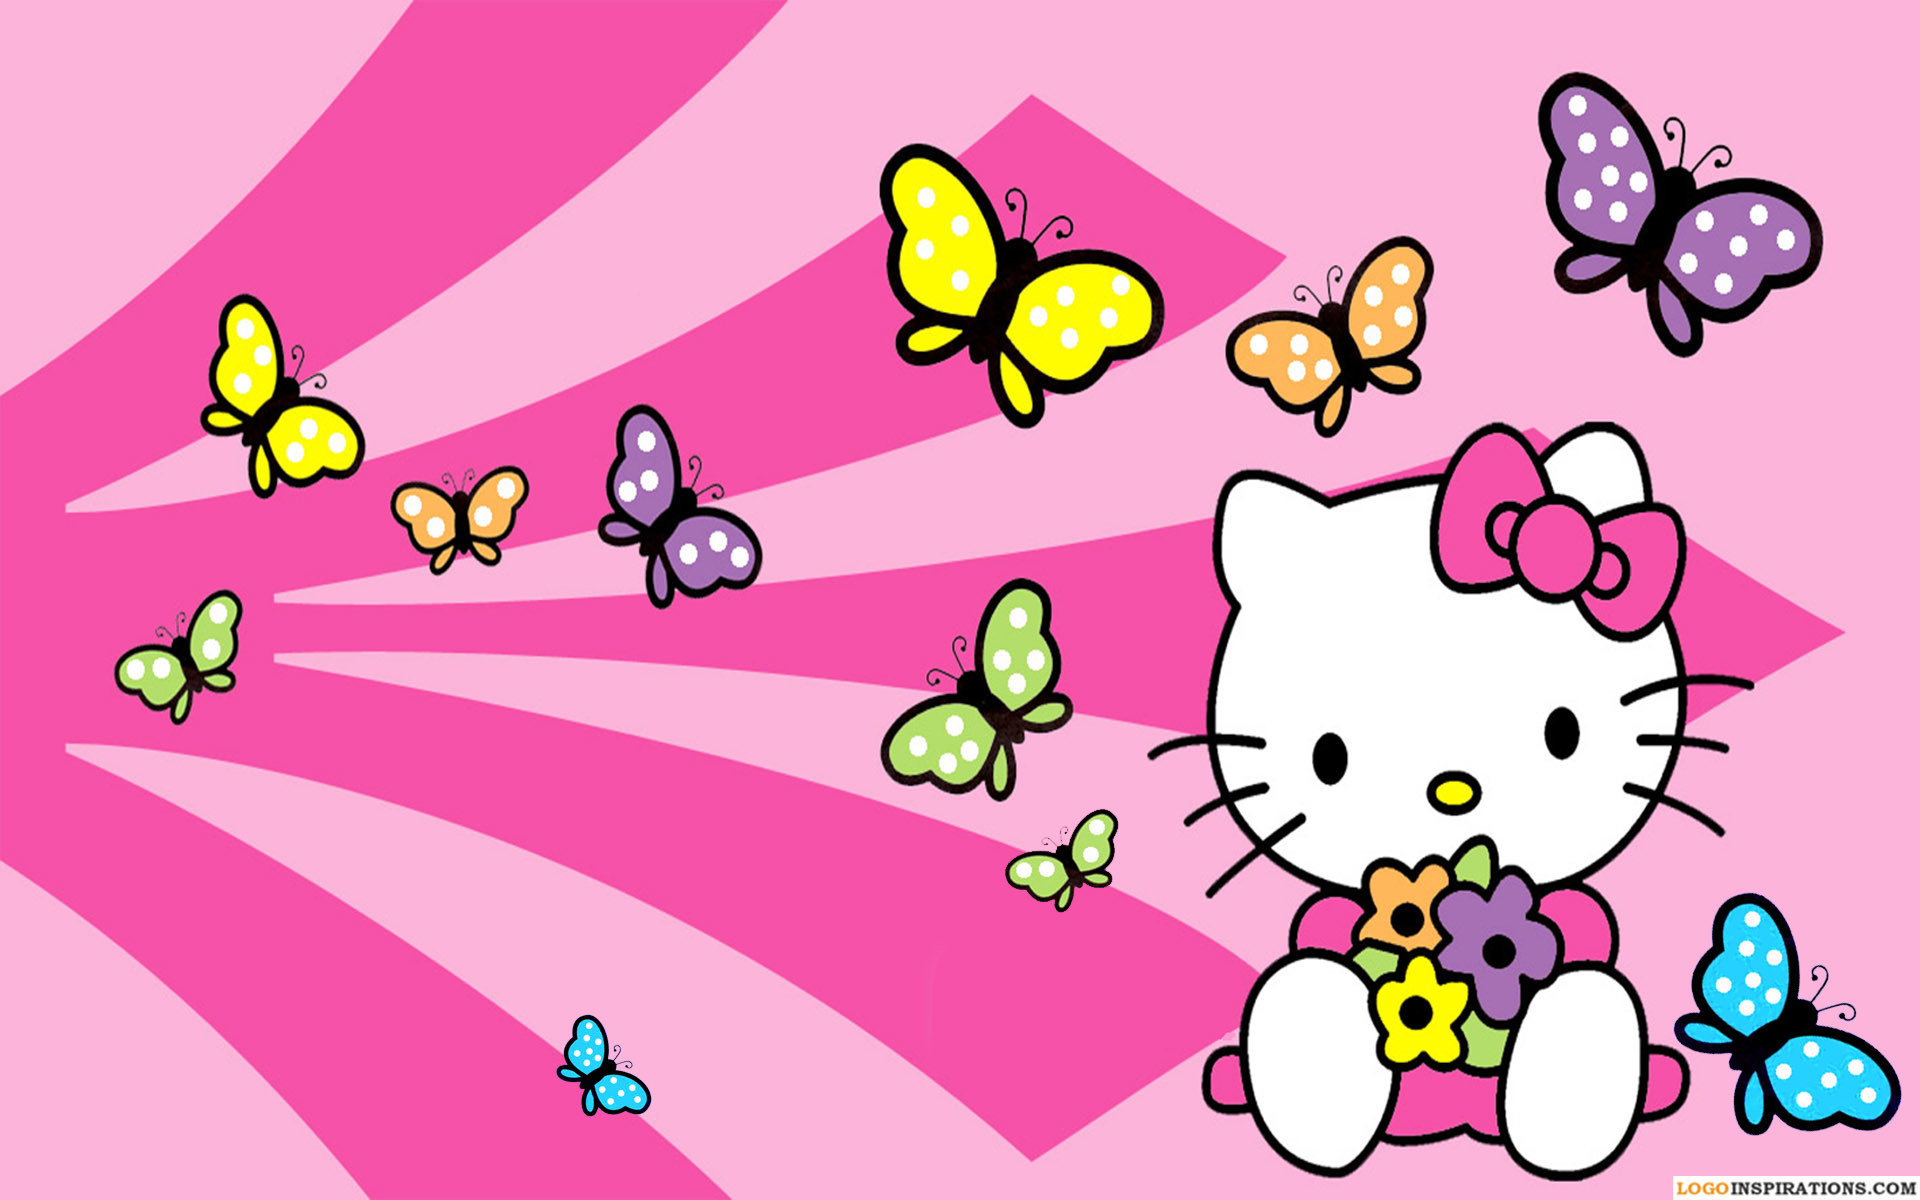 Pink hello kitty background 64 images 1080x1920 4 hello kitty wallpaper for android hd5 338x600 download voltagebd Gallery